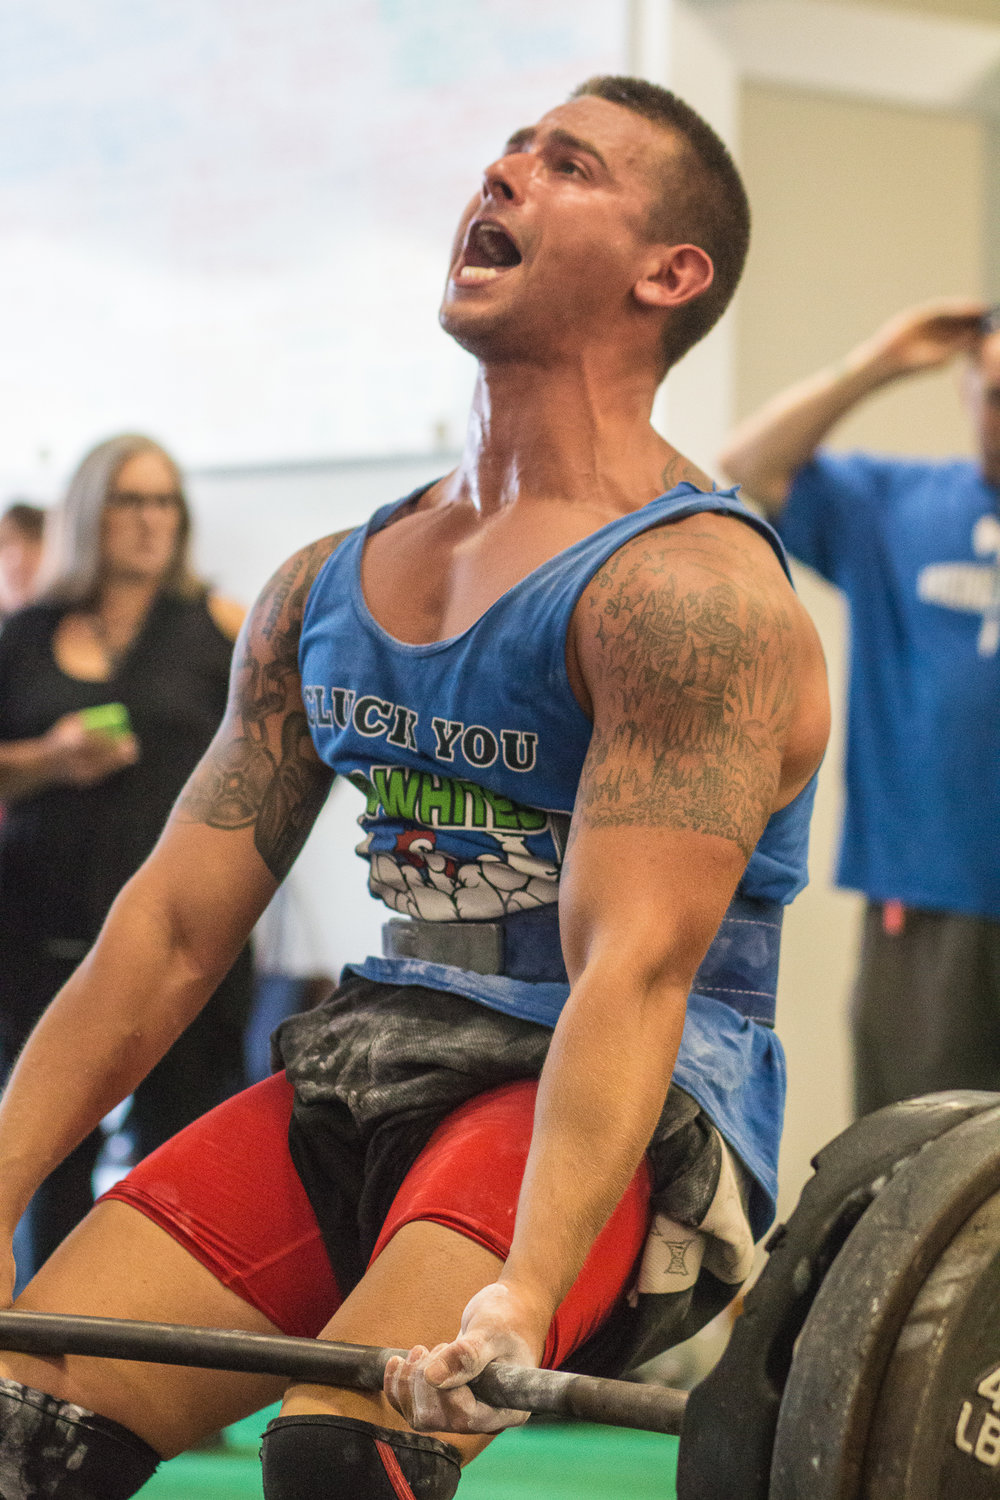 hurt-performance-4th-annual-little-viking-charity-washingtonville-new-york-strongman-eveyrdaylifters-vp (126 of 348).jpg